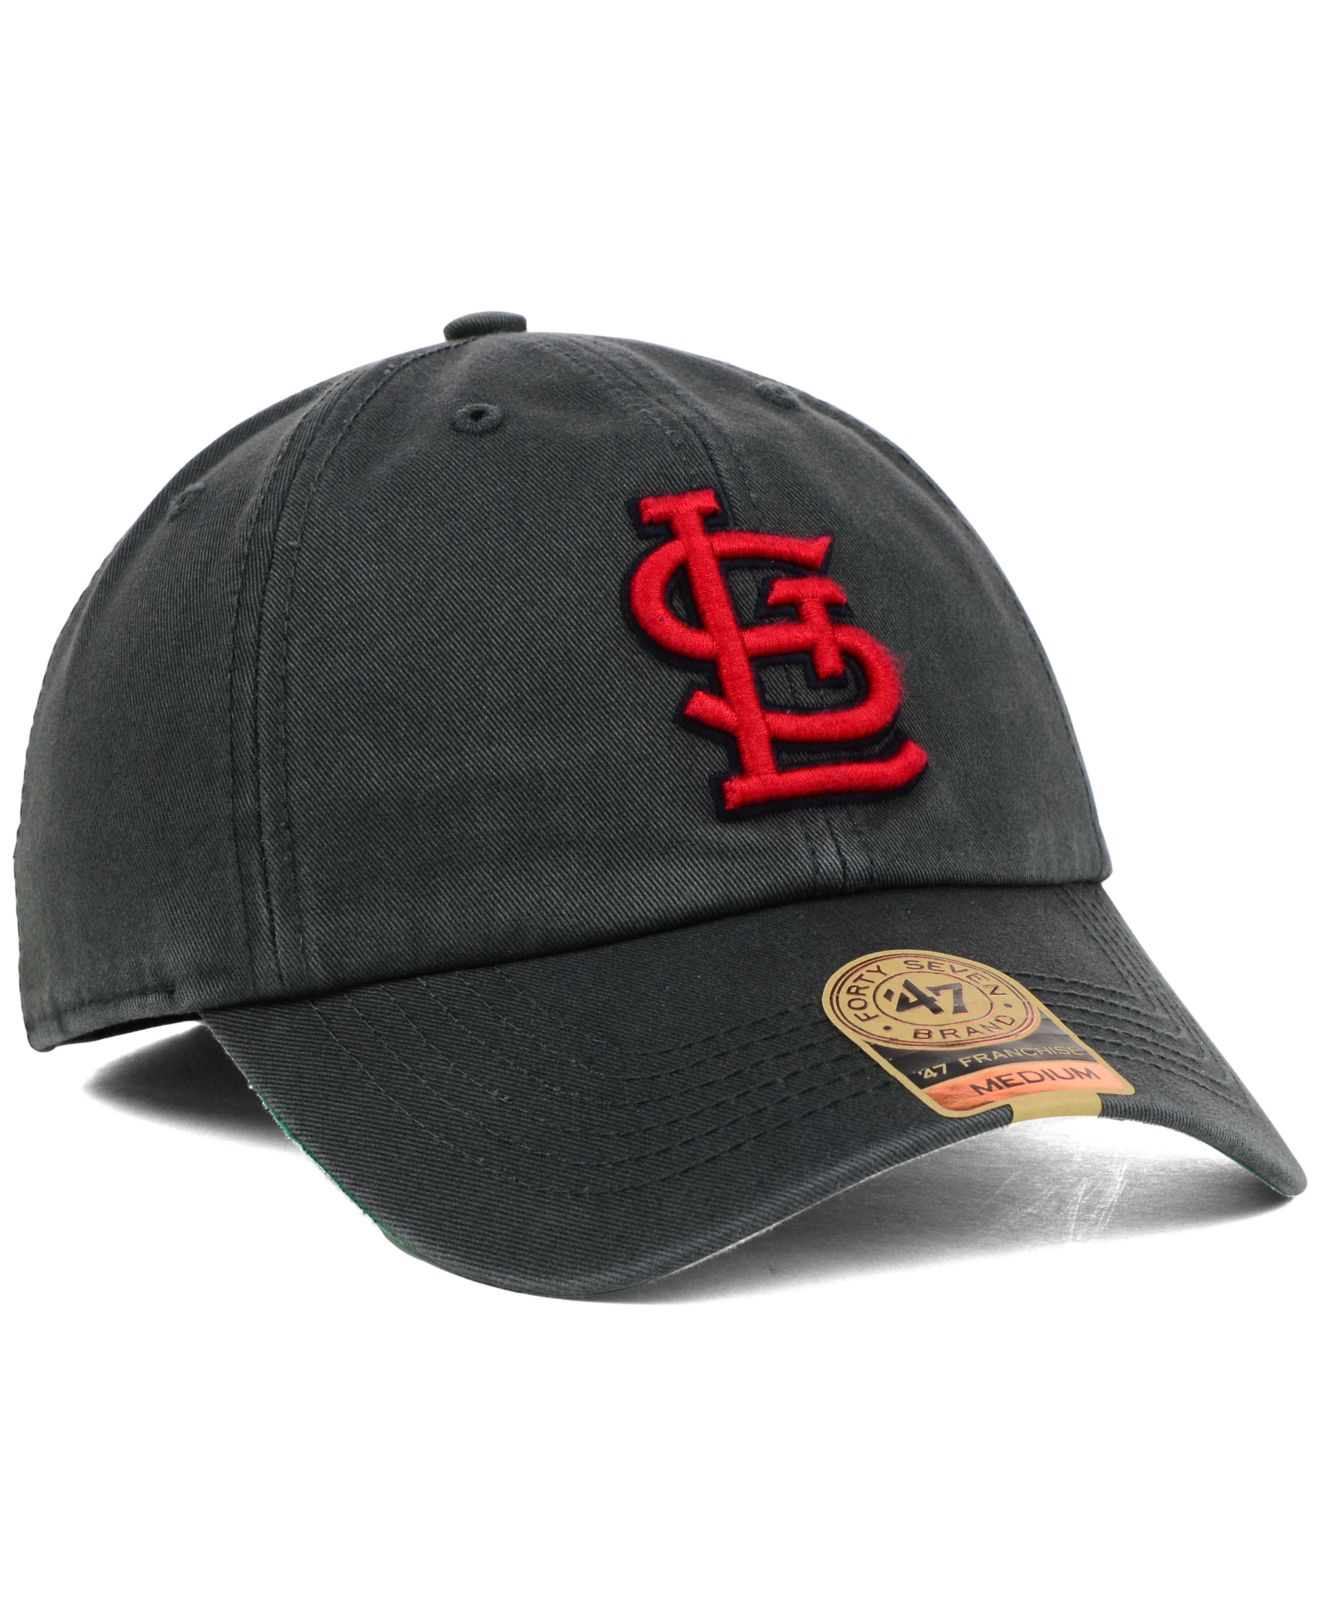 7e059d2bc Lyst - 47 Brand St. Louis Cardinals Mlb Hot Corner Franchise Cap in ...